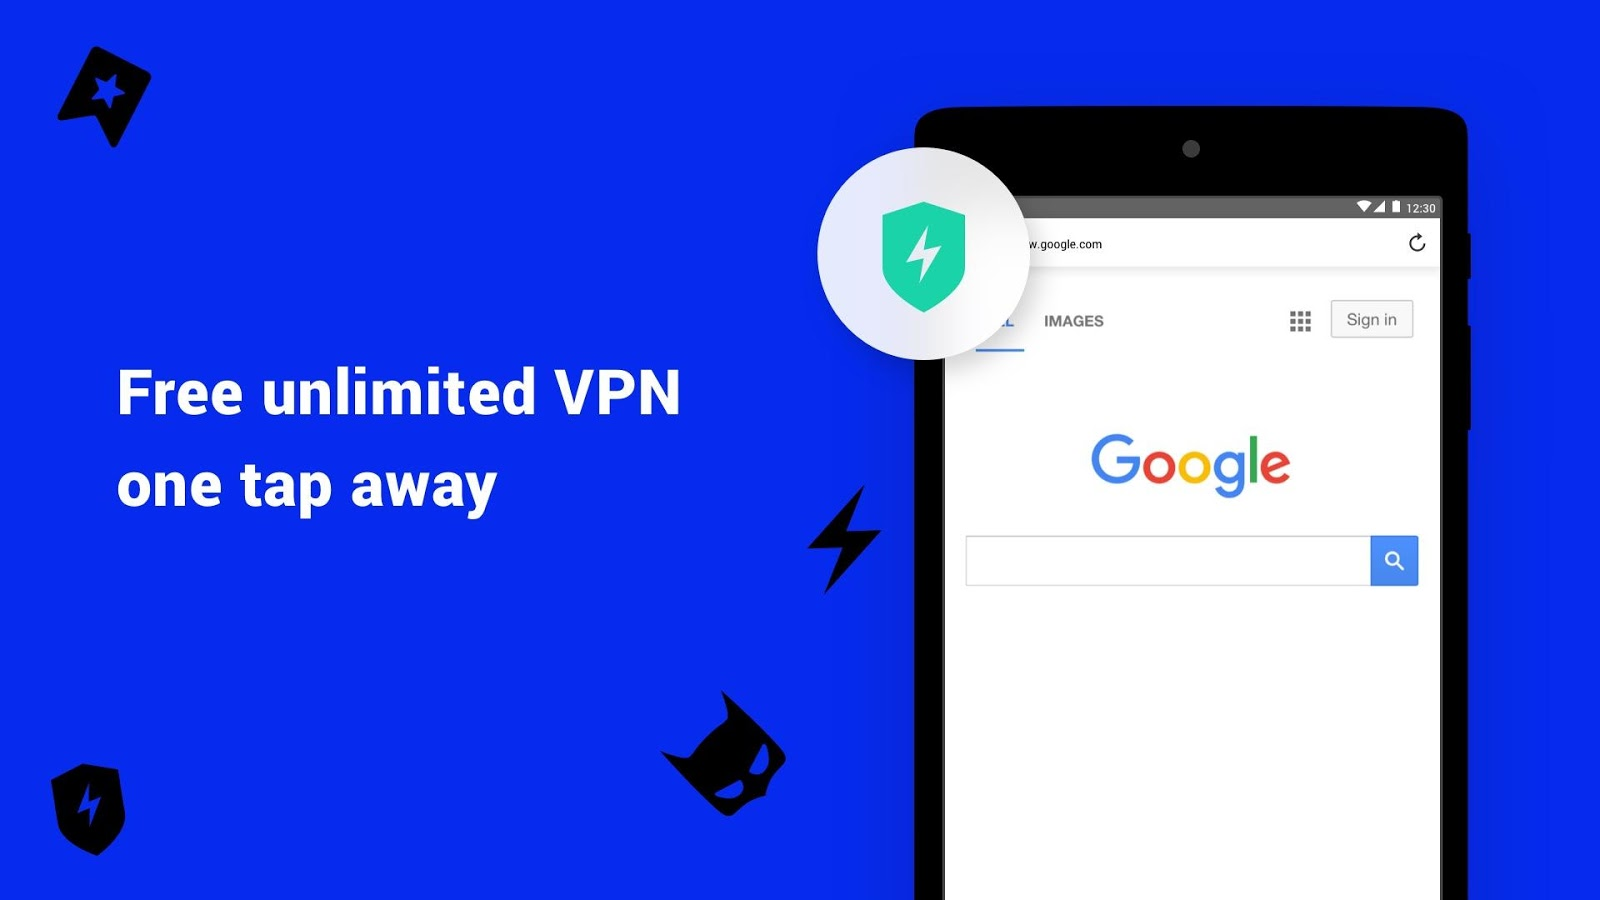 VyprVPN - World's Fastest VPN for Gaming